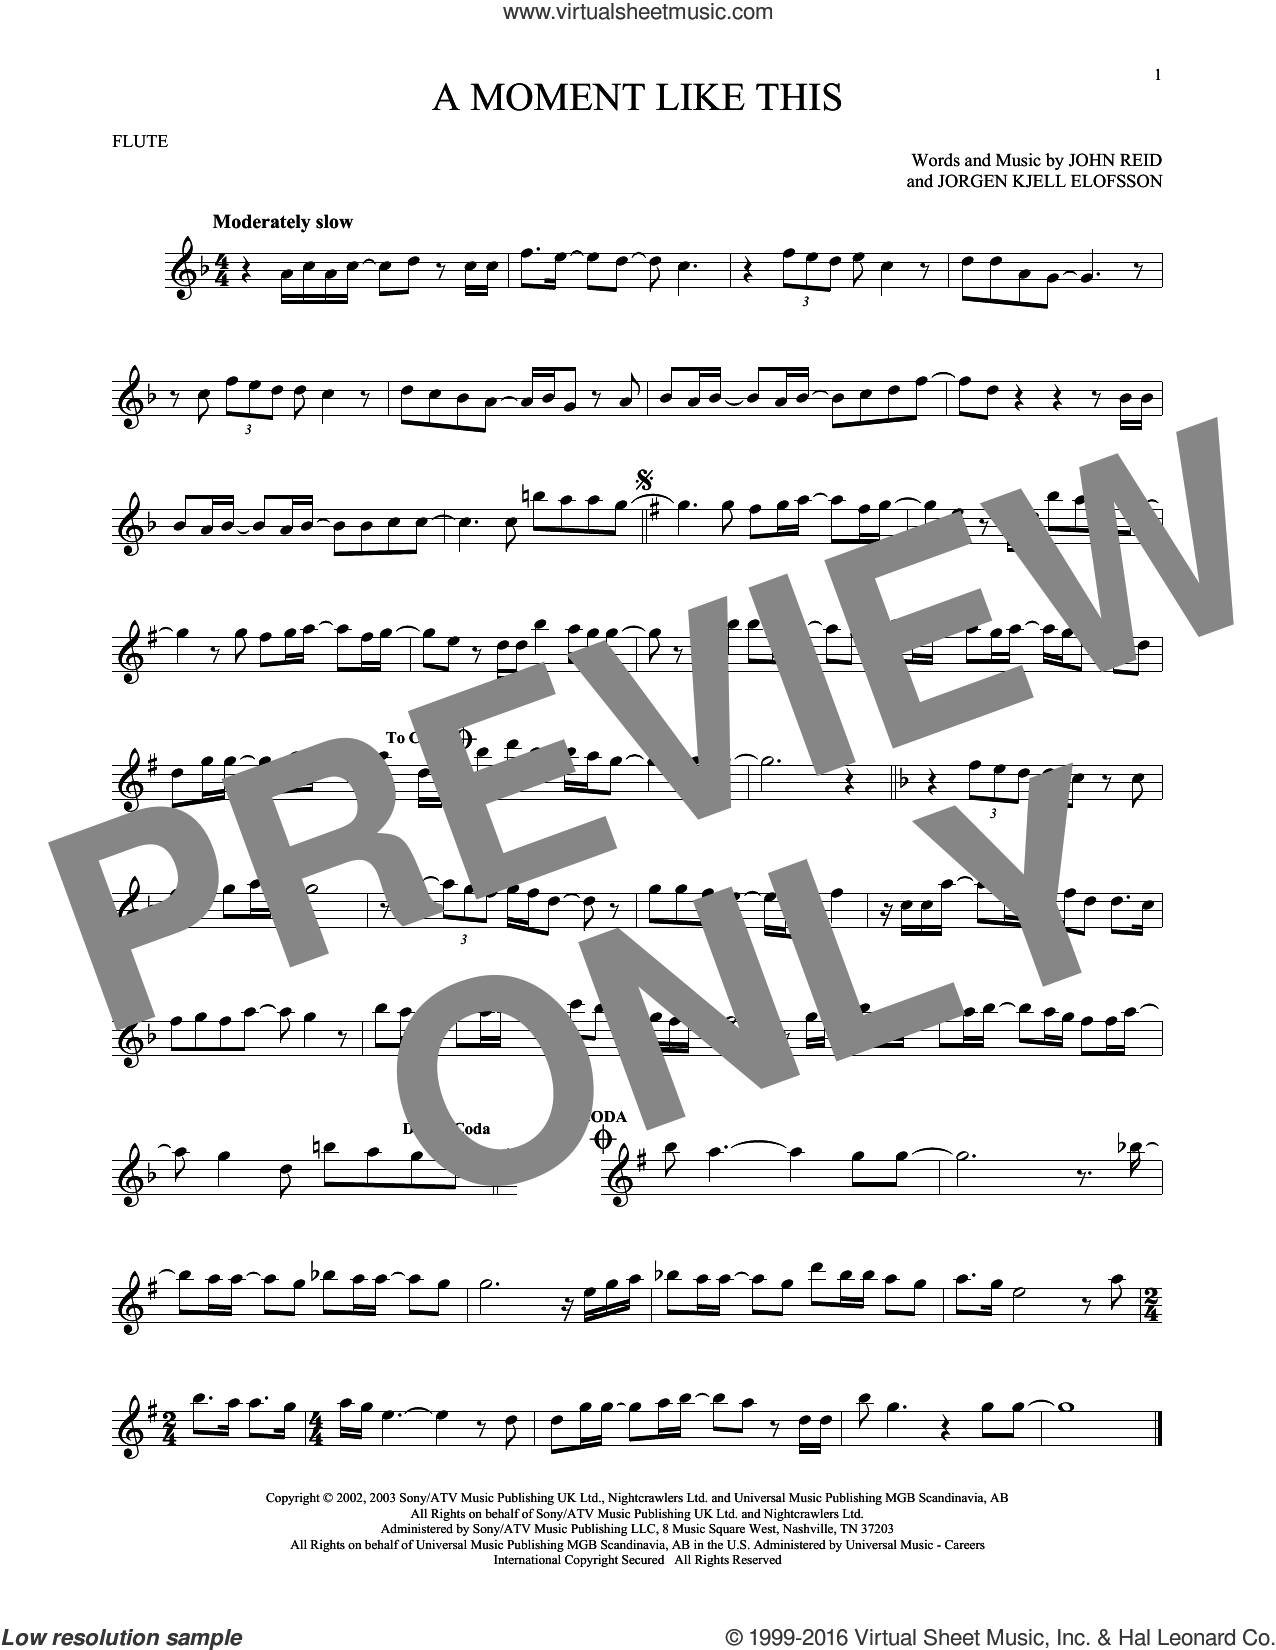 A Moment Like This sheet music for flute solo by Kelly Clarkson, John Reid and Jorgen Elofsson, intermediate skill level